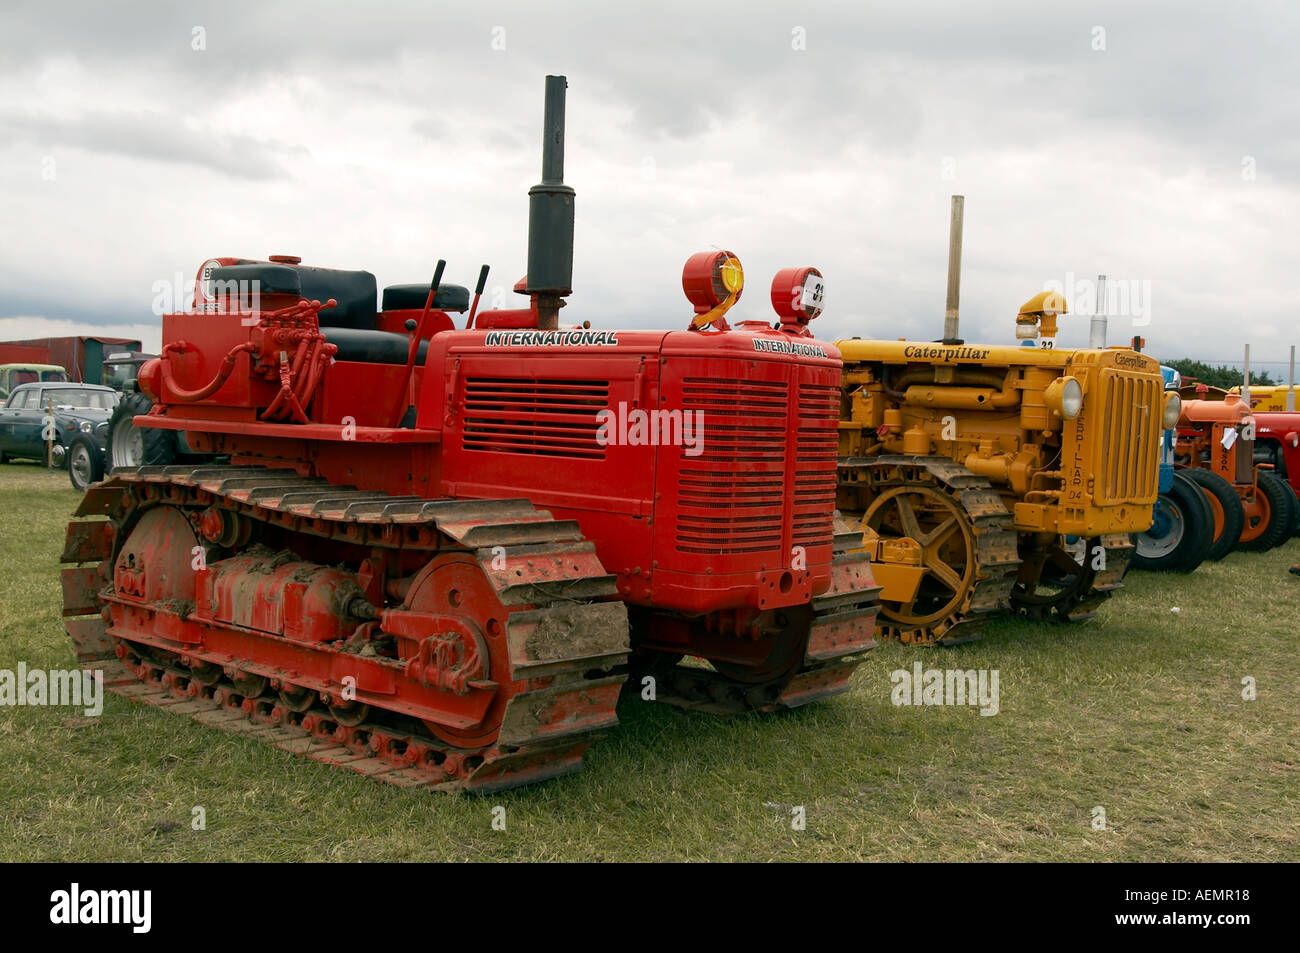 Old Tractor With Tracks : Old tractor with caterpilar tracks tank farming